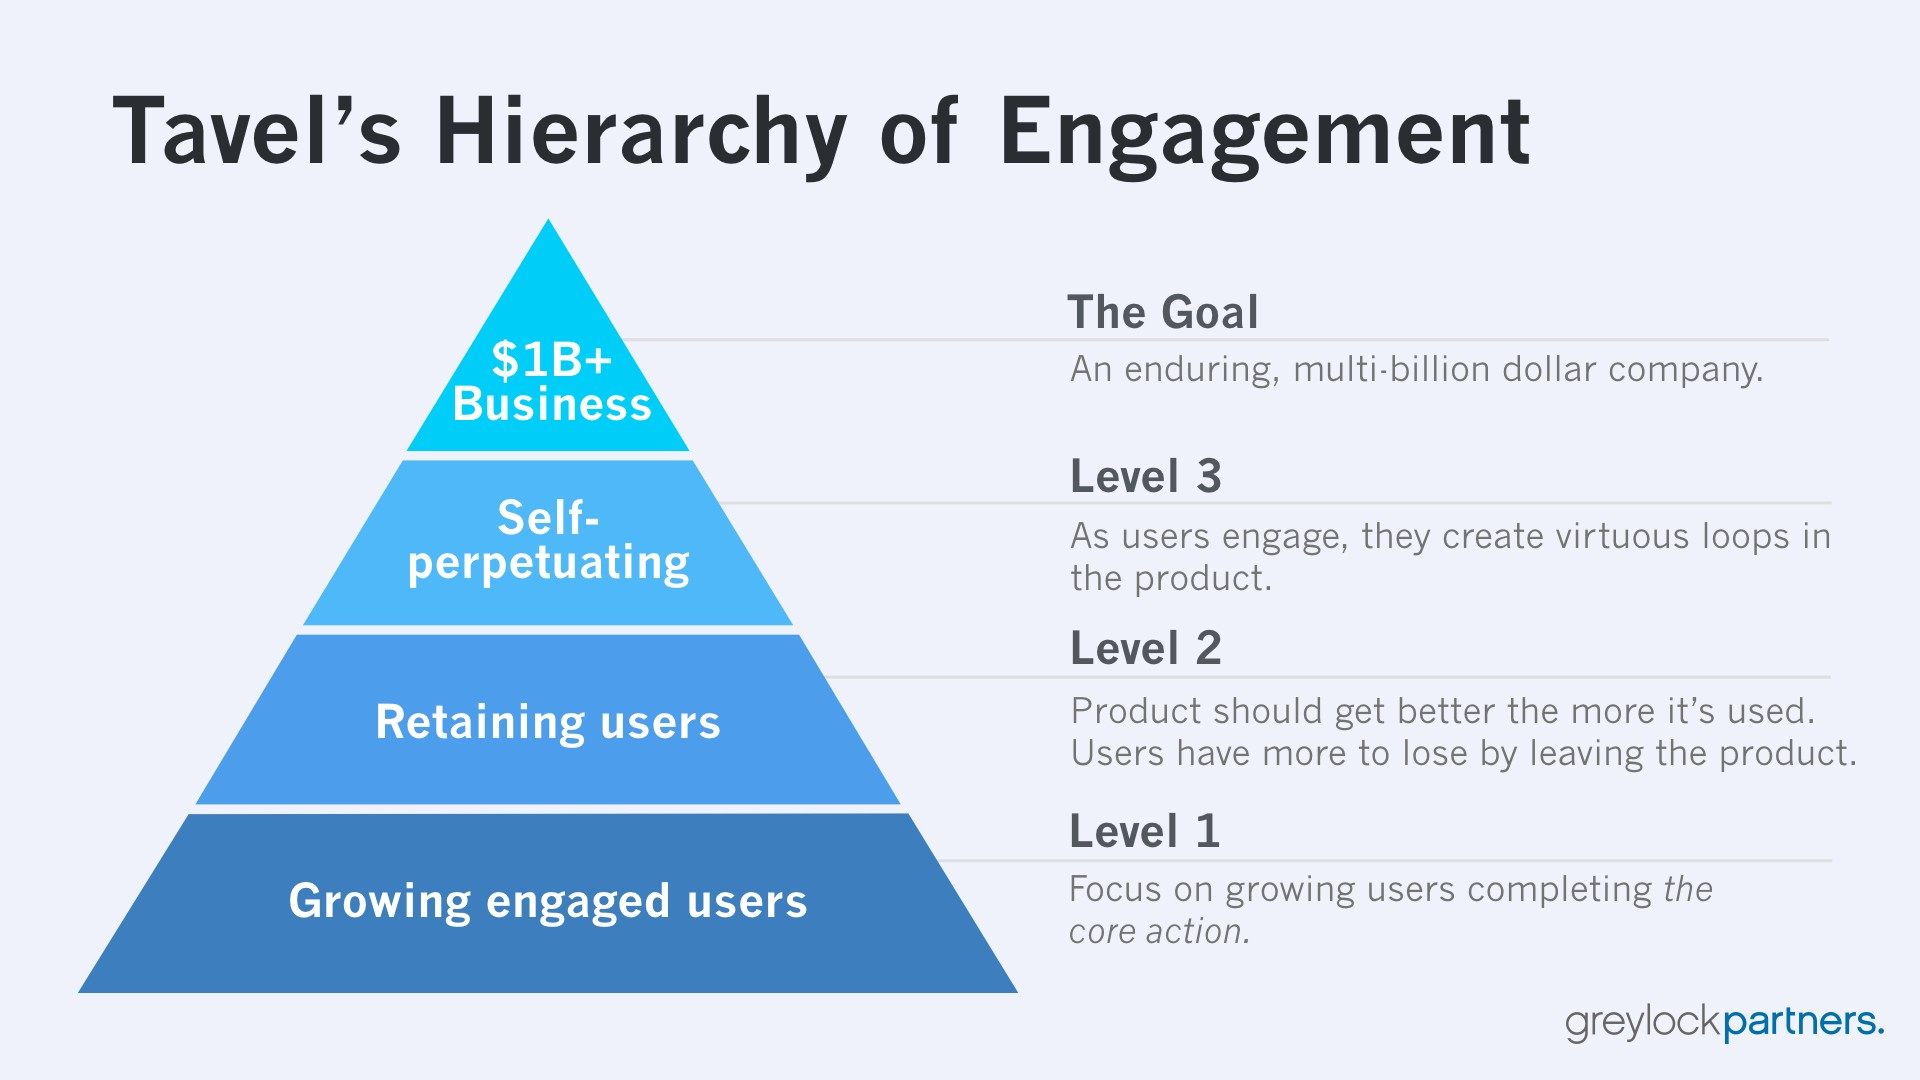 A photo of the hierarchy of engagement